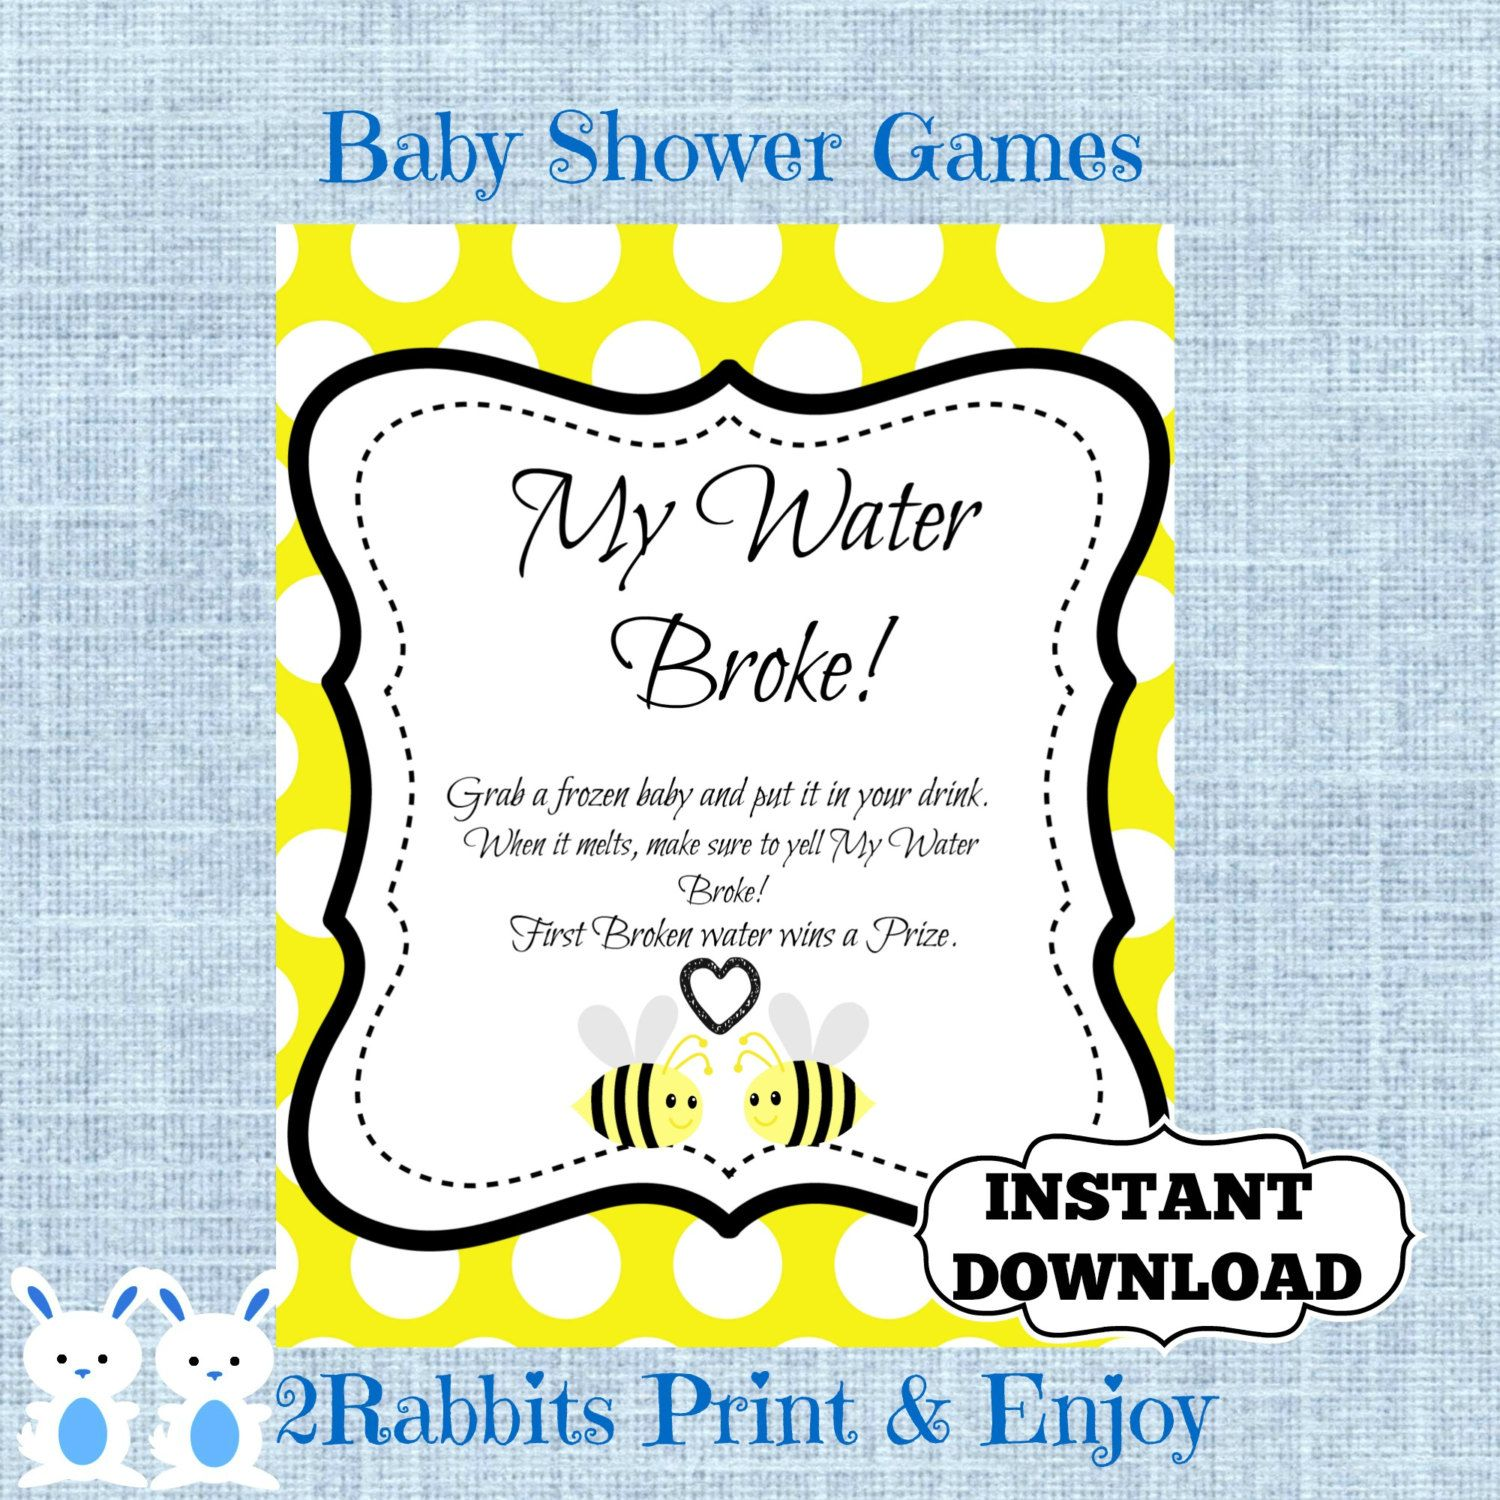 Bumble Bee My Water Broke! Game Sign Bee Baby Shower Game Ice Cube Baby  Shower Drink  Shower Drink Game Instant Download   Yellow Polka Dot